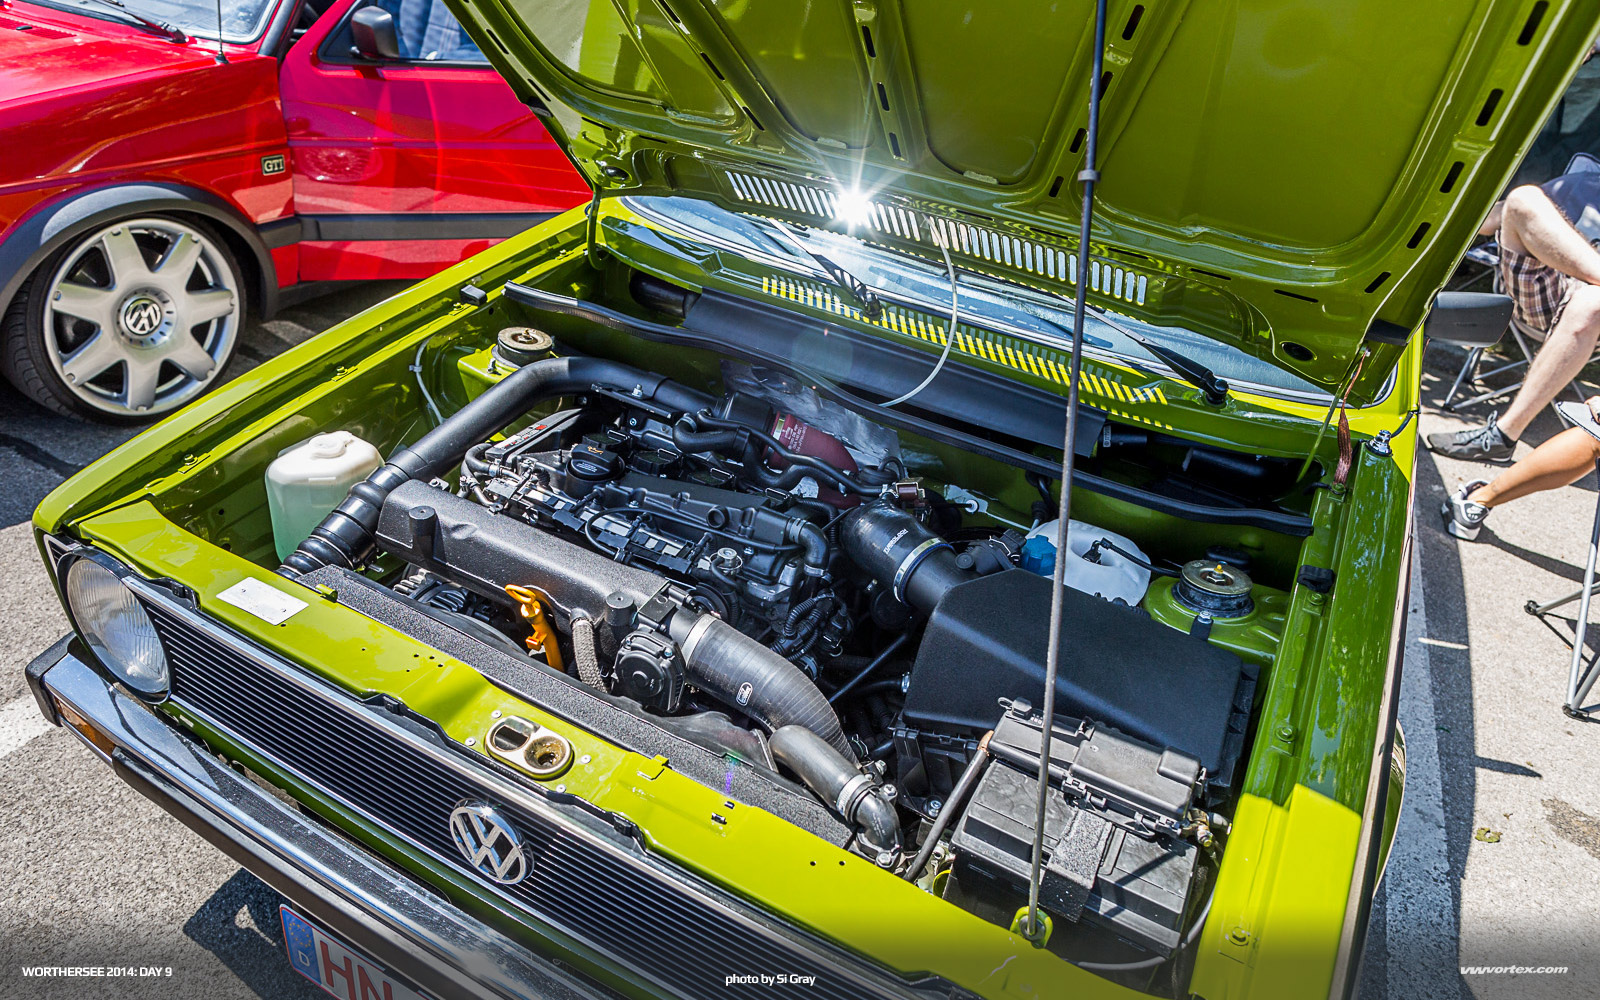 2014-Worthersee-Day-9-Si-Gray-376